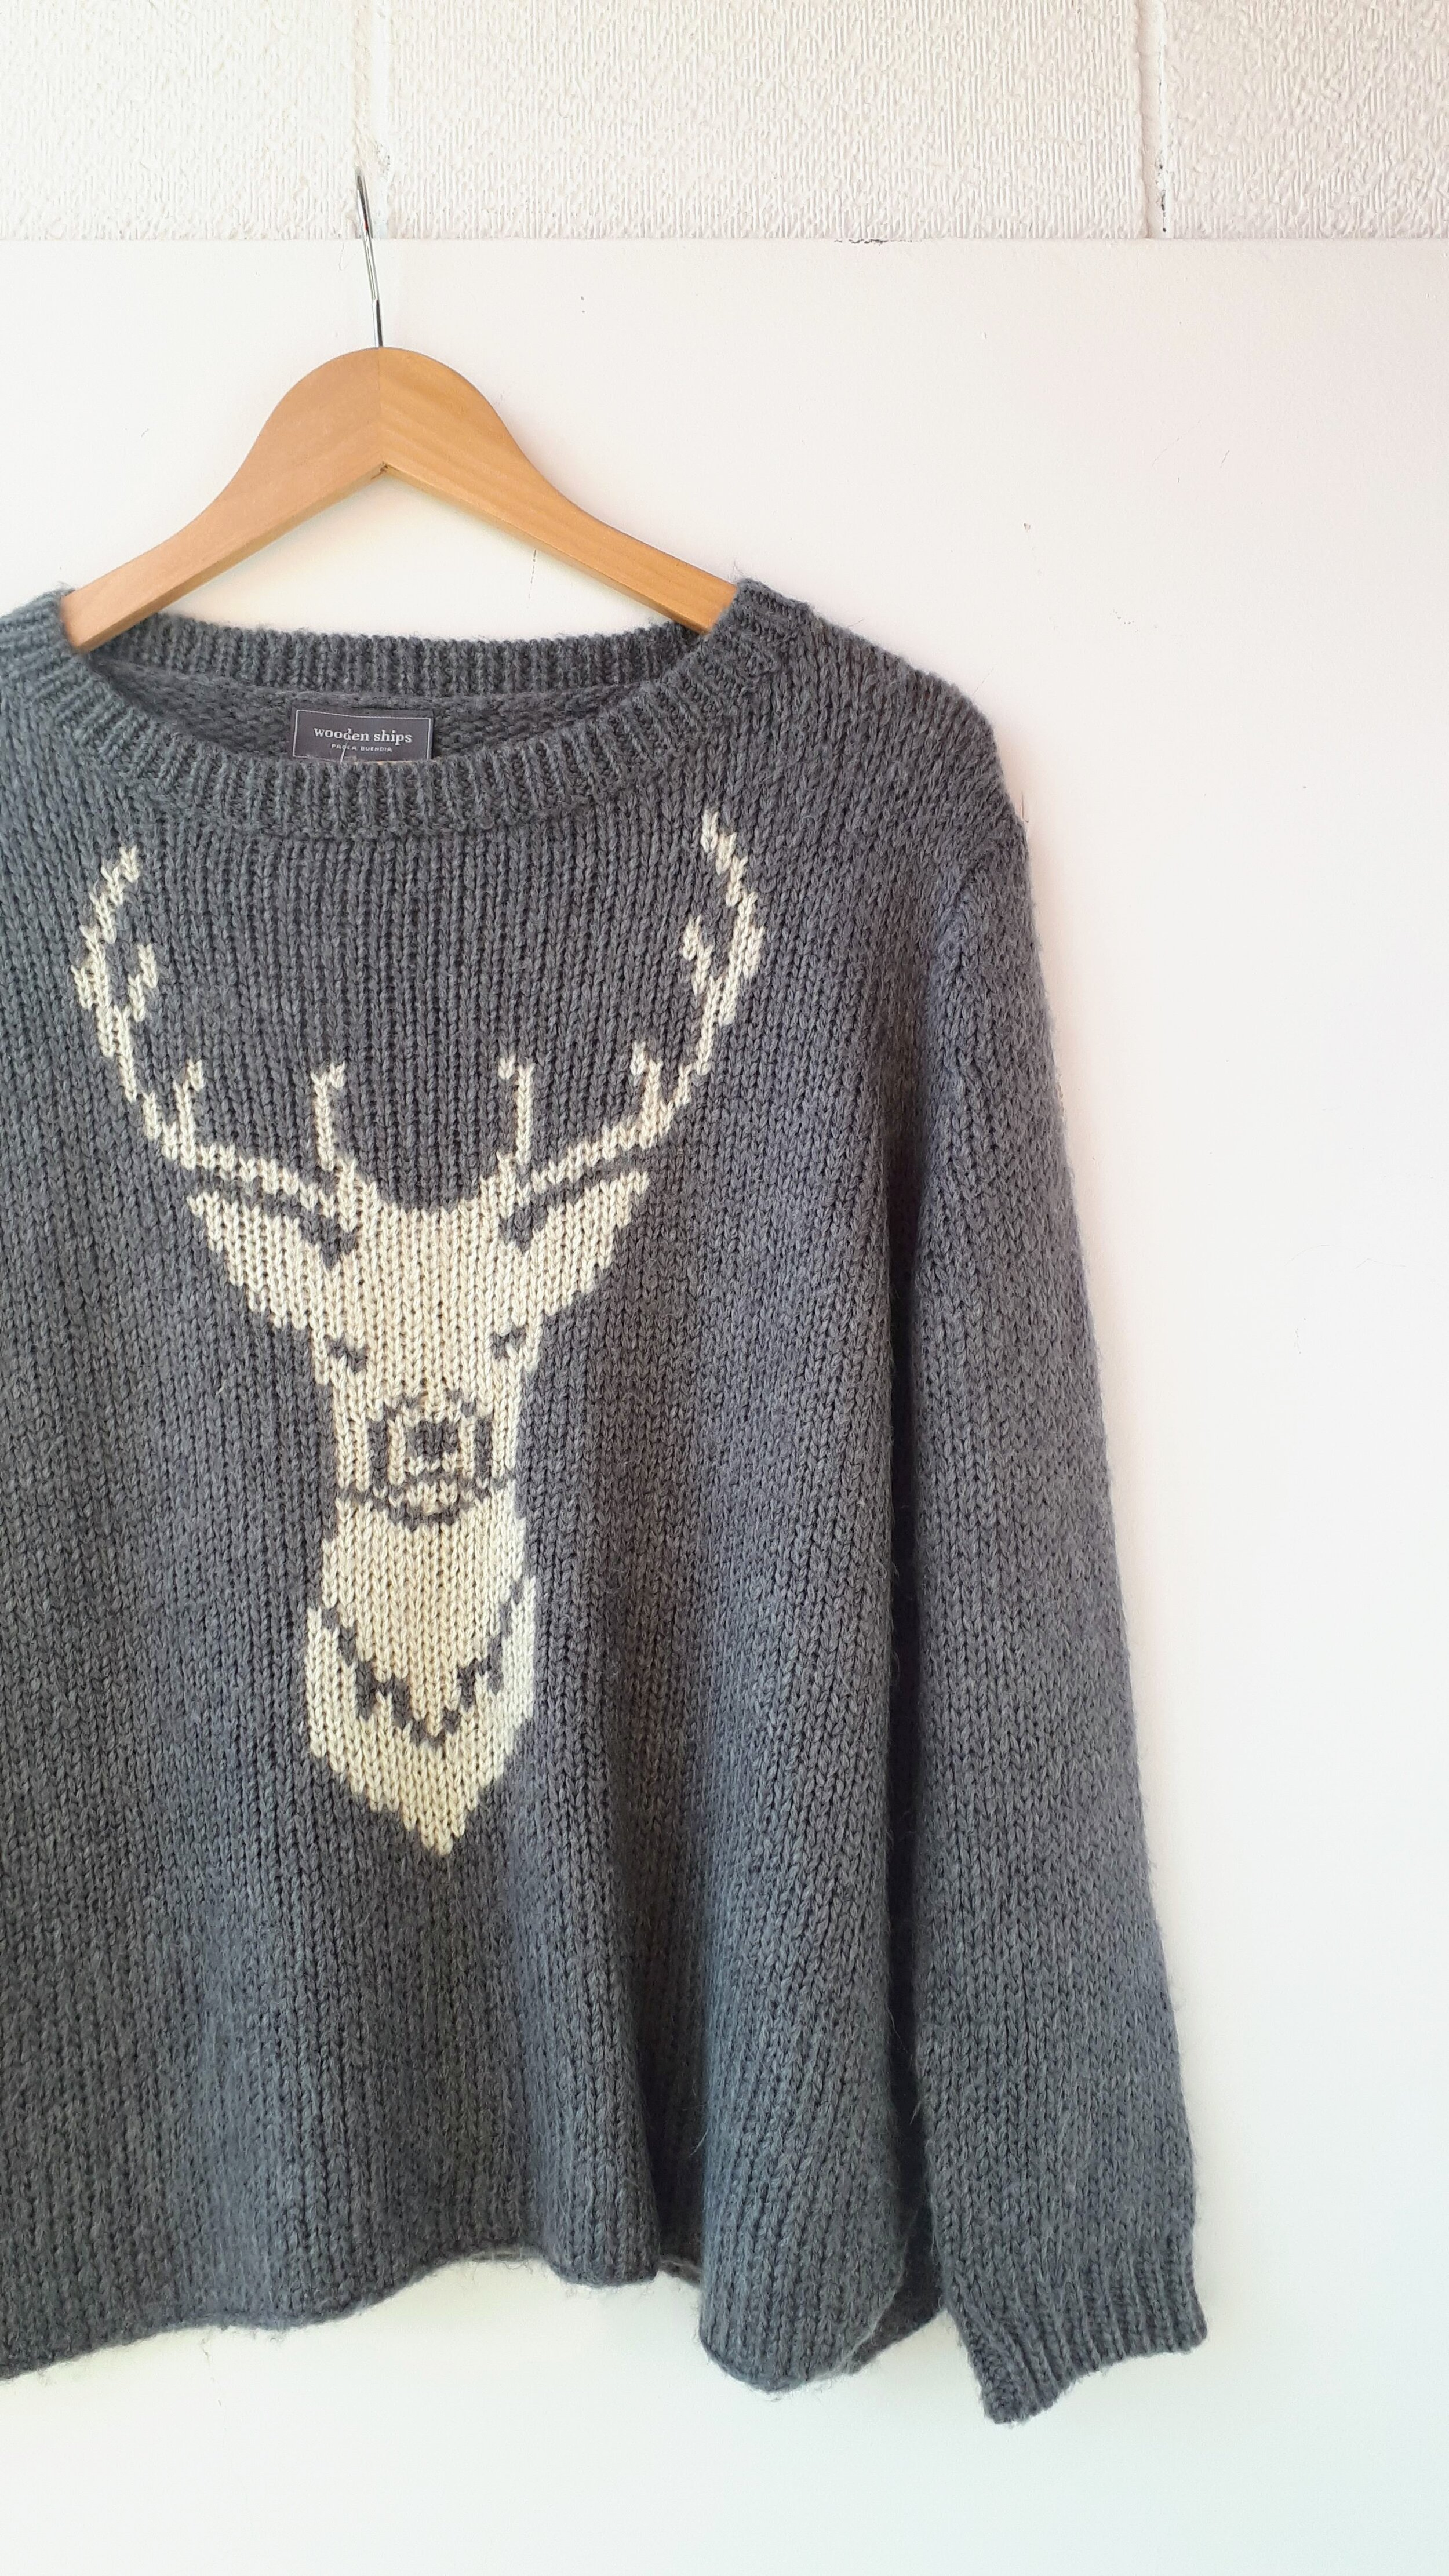 Wooden Ships sweater; Size M, $30